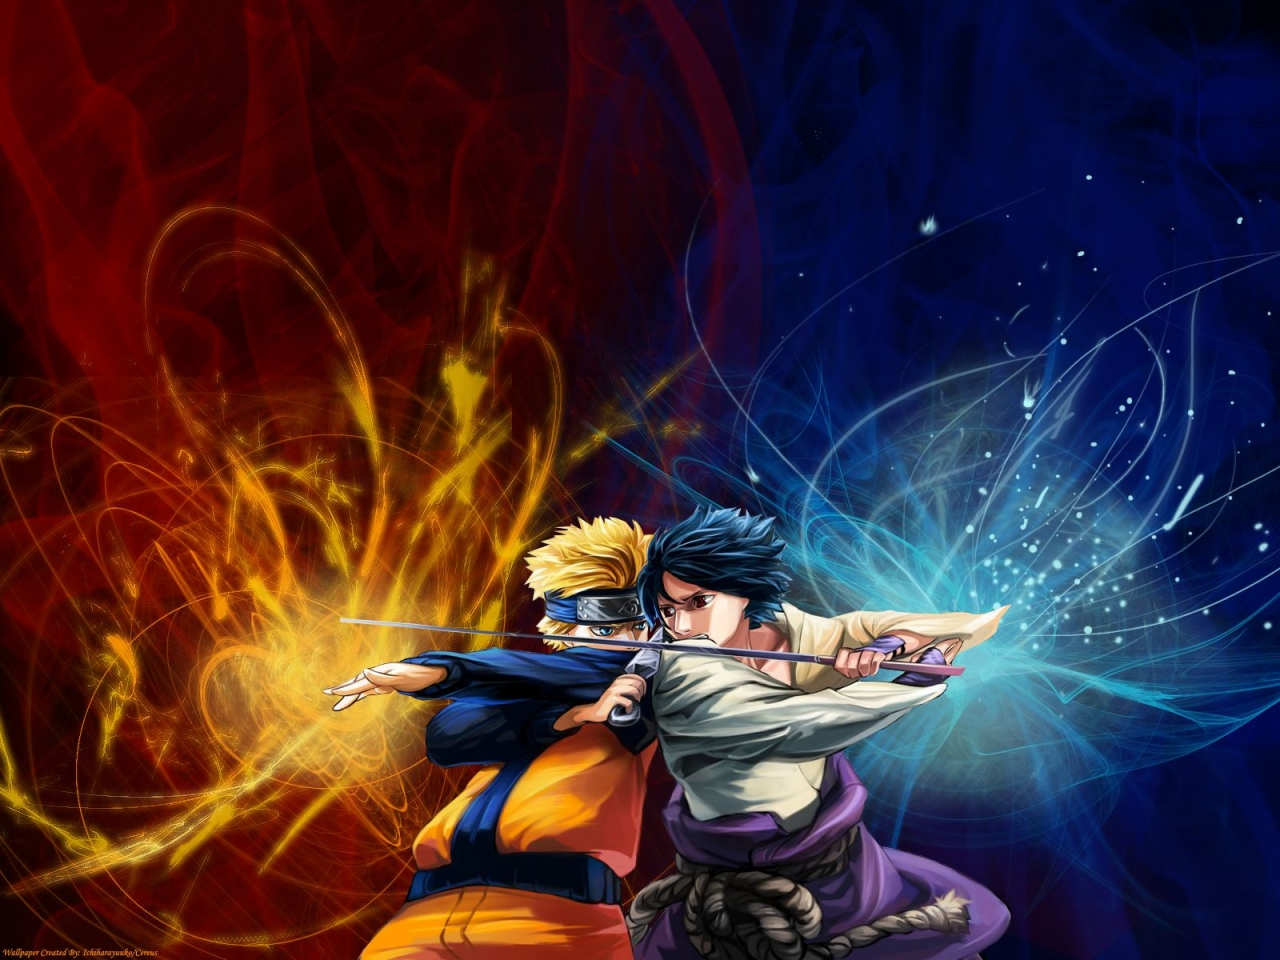 WallpapersKu: Naruto vs Sasuke Wallpapers